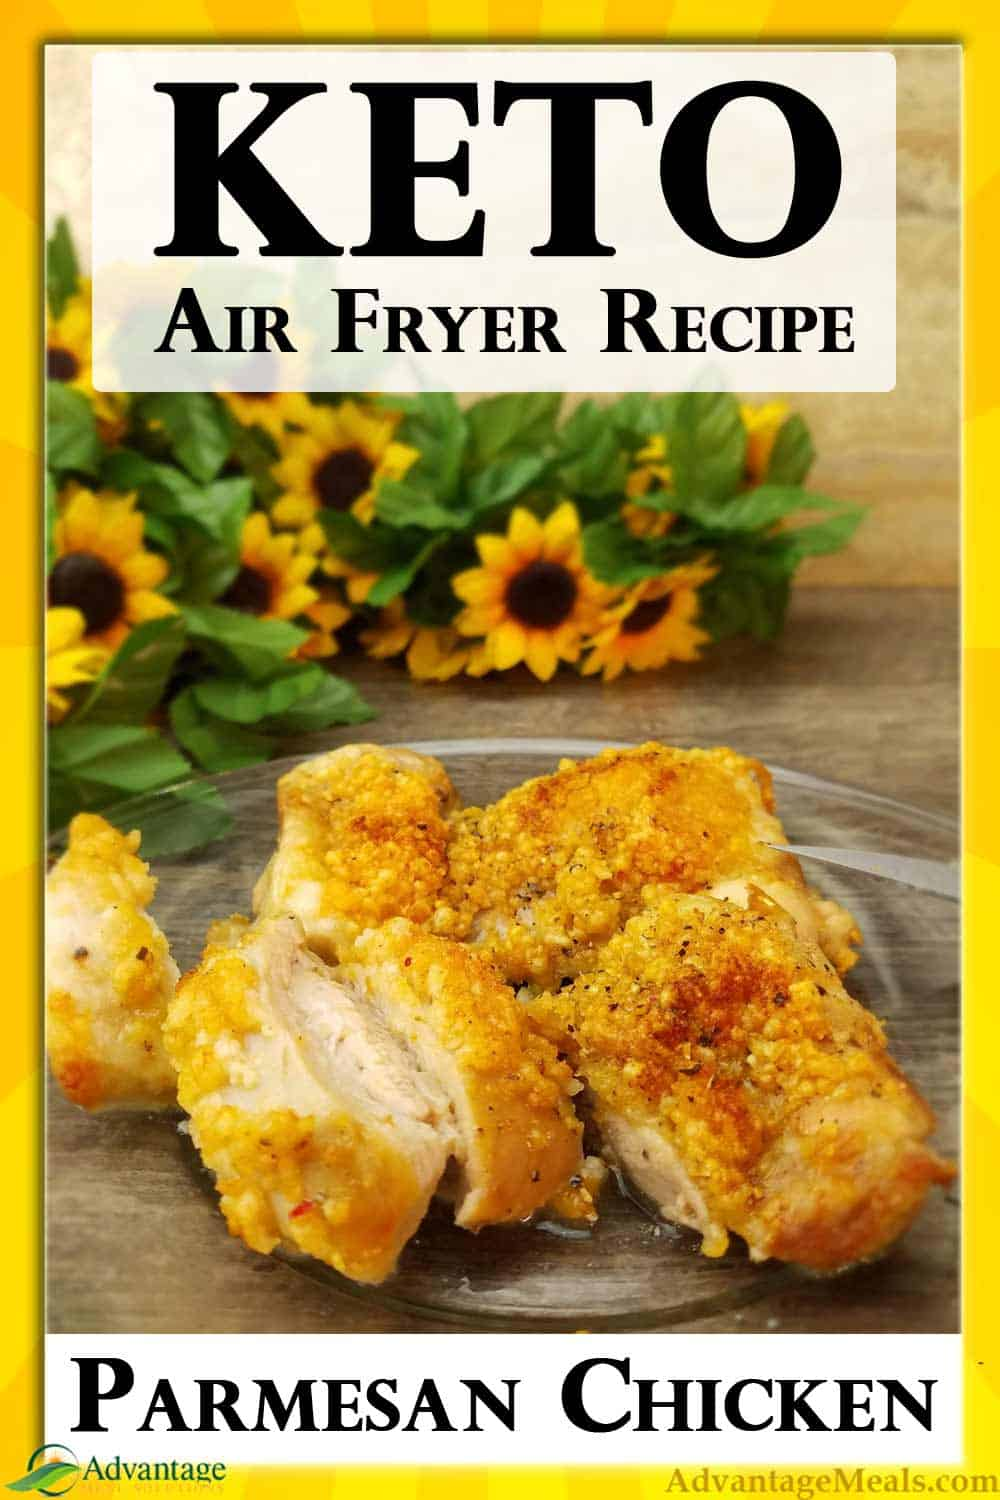 Super Easy Keto Air Fryer Recipe for Crispy Parmesan Chicken Thighs.  In full disclosure, we cook for a living, and I got an Air Fryer for my husband just his hot wings.  I had no idea we\'d use this thing so much.  This is my husband\'s super easy version of keto crispy chicken thighs.  He always takes recipes down to the minimum necessary to get the job done, and this one is a winner.  Let us know in the comments how it works for your family. - Angela #Keto #AirFryer